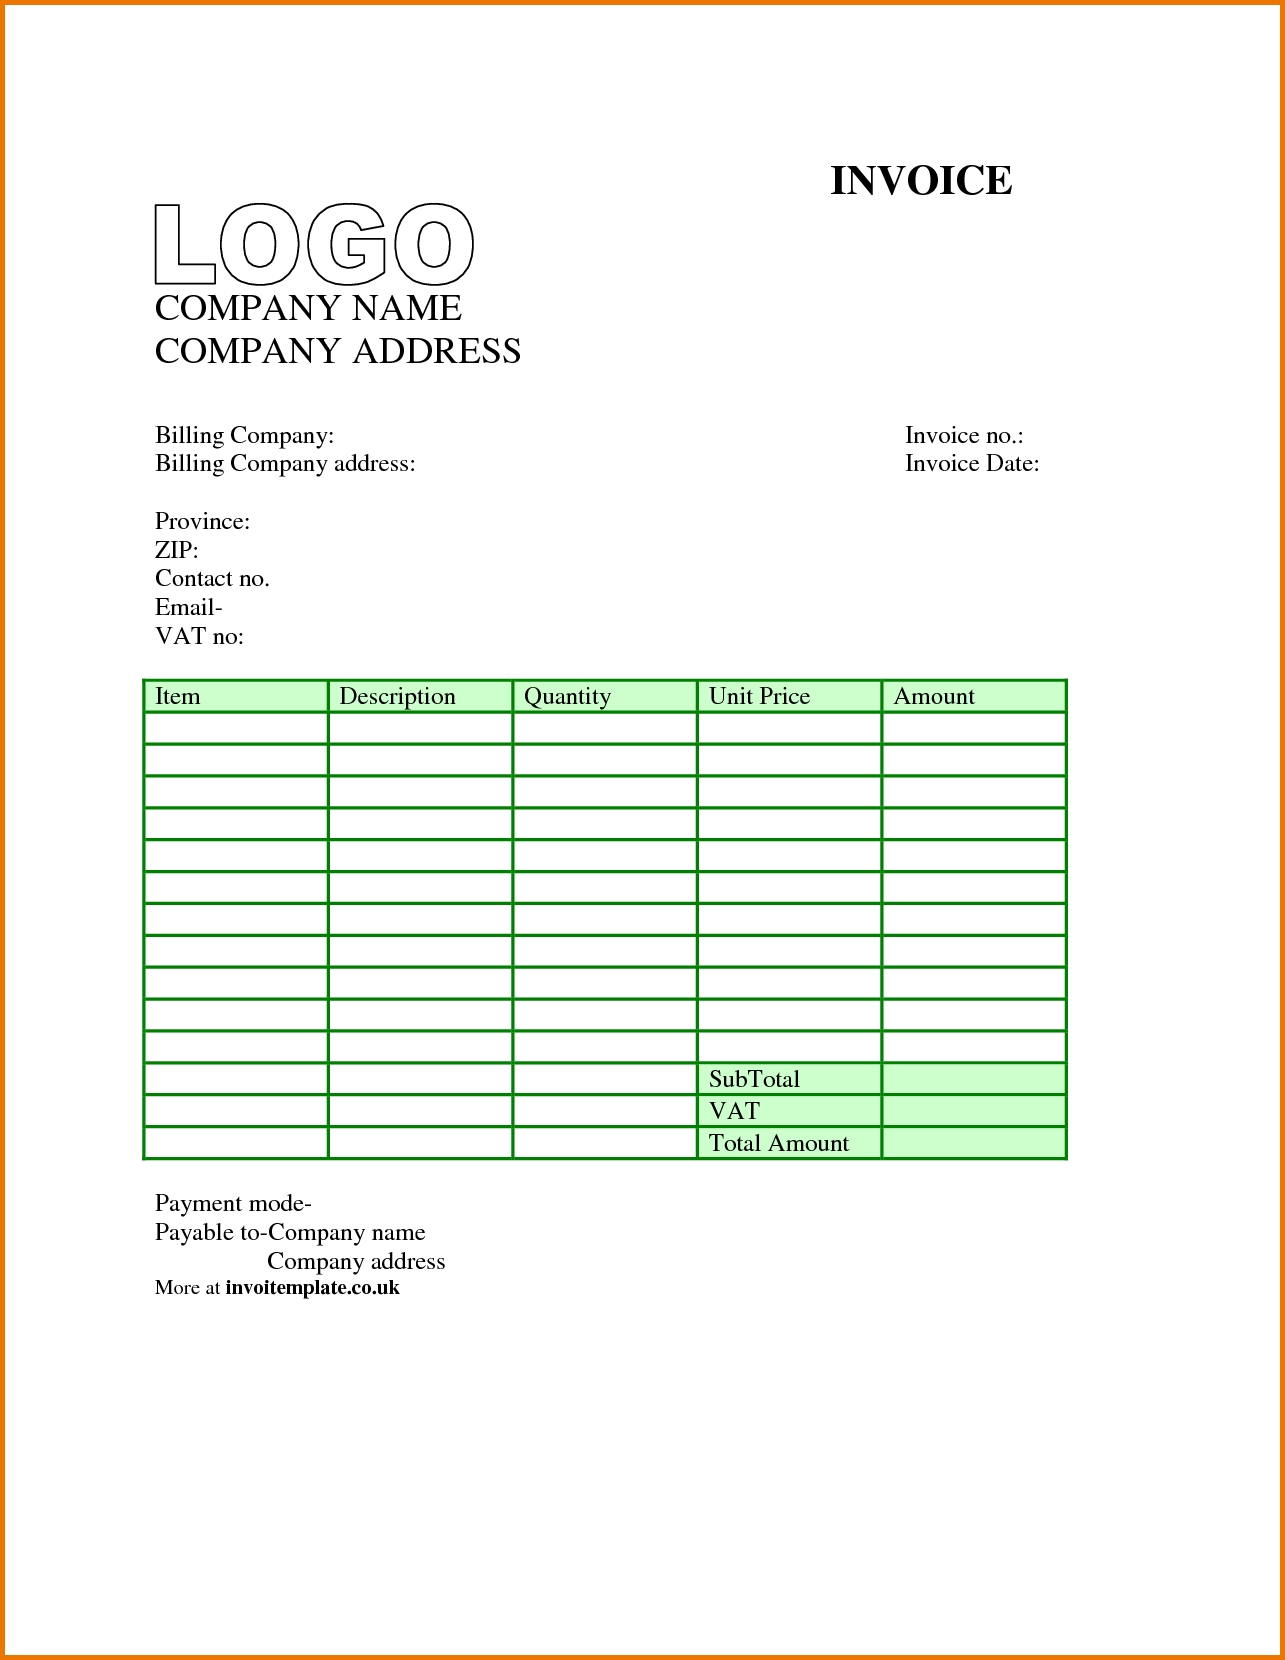 invoice templates uk invoice template ideas 8 invoice template uk proposaltemplates invoice templates uk